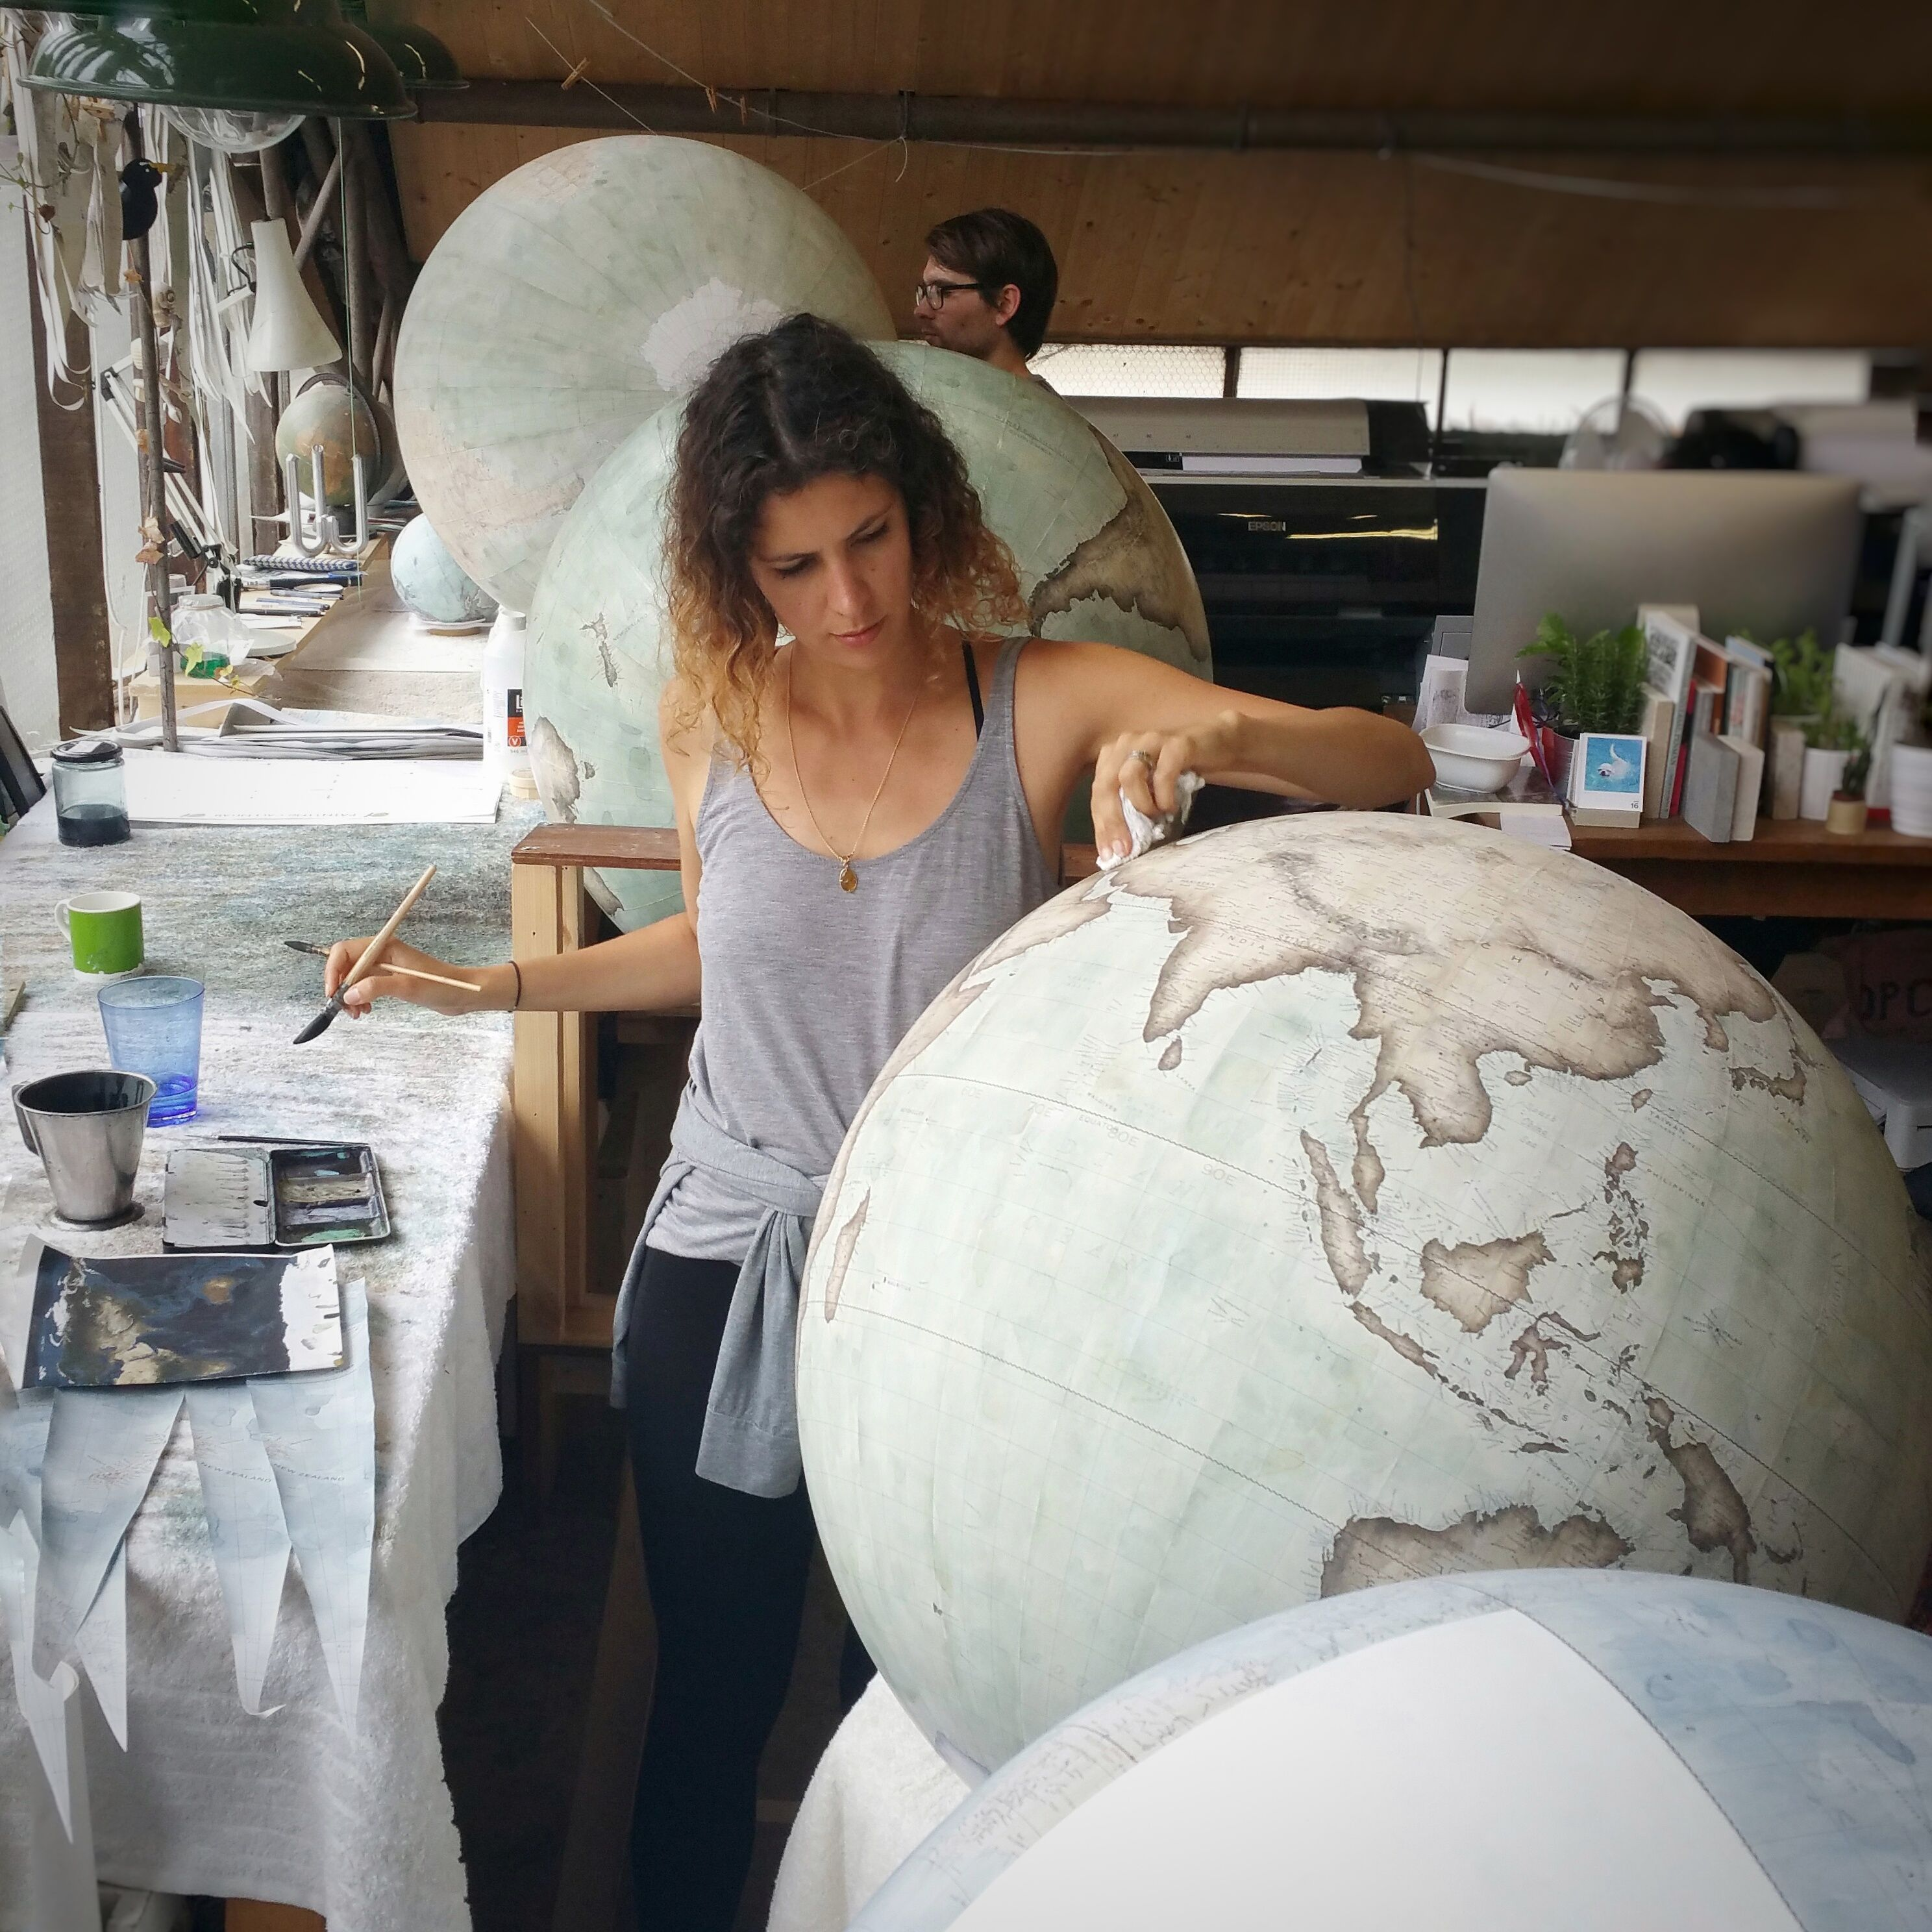 In the London globe-making studio with Bellerby & Co Globemakers. Handcrafted and hand painted world globes. Colour : Mint Green. Photo : Jade Fenster